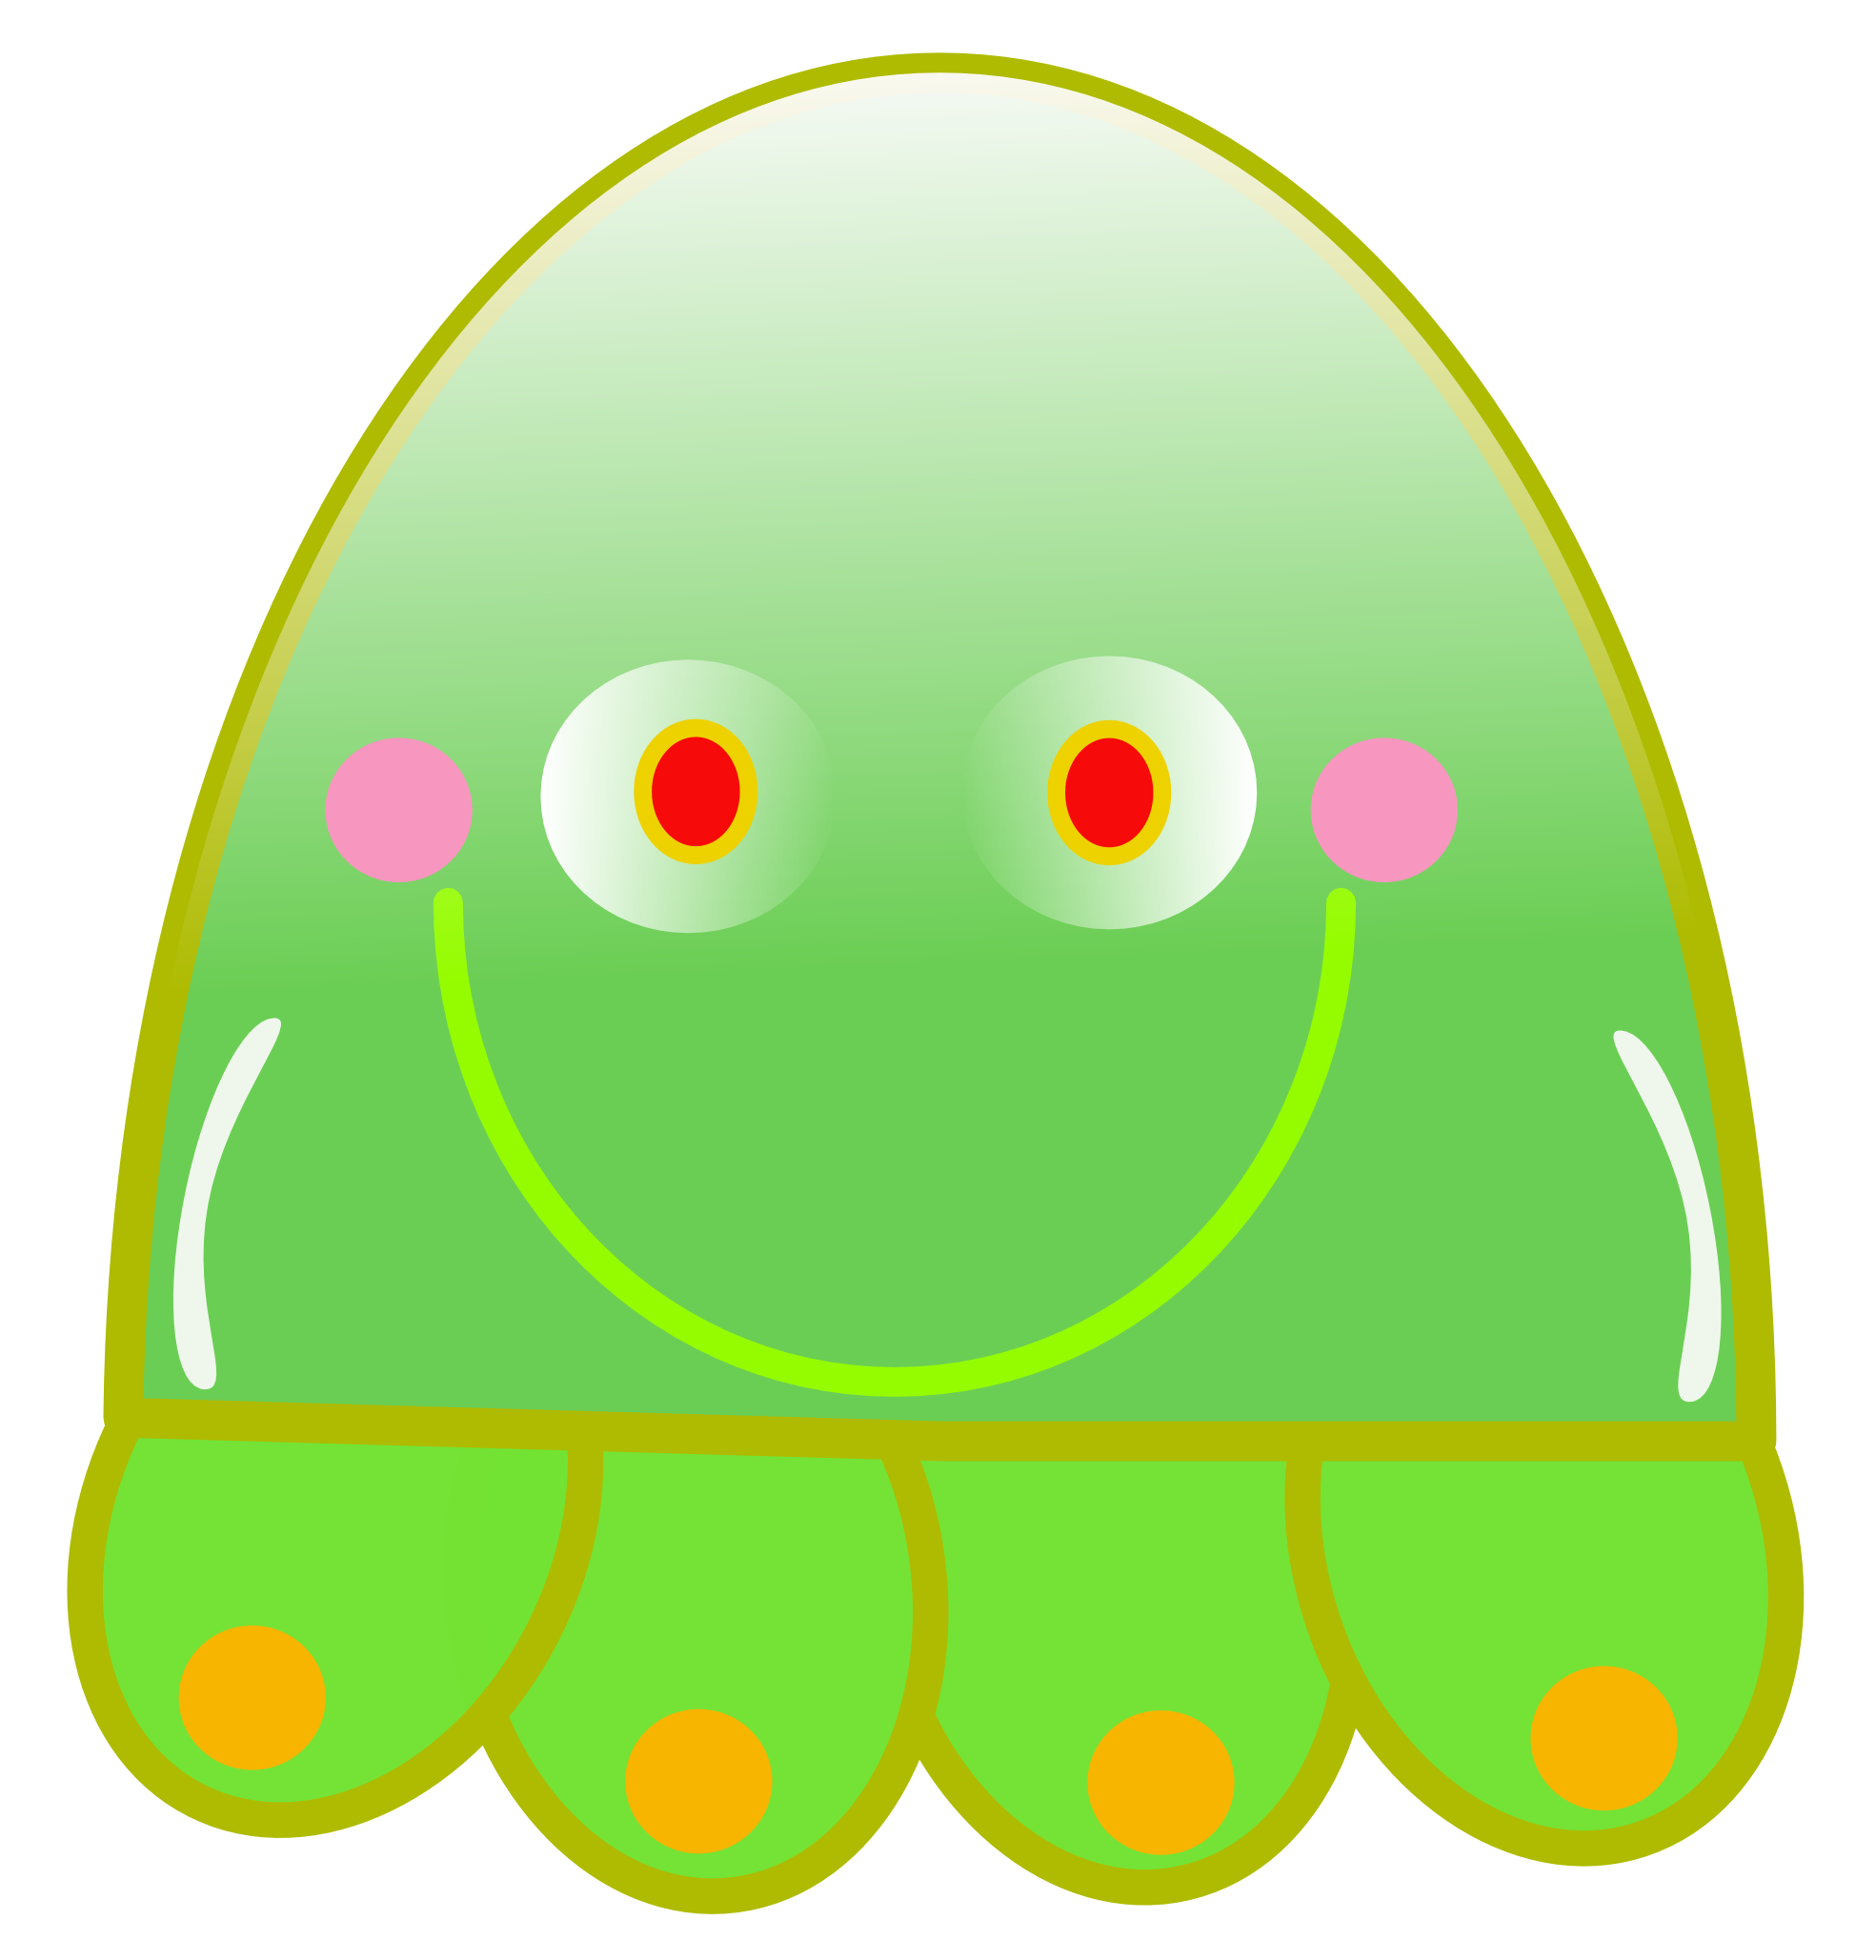 Jelly clipart large.  amazing cute jellyfish